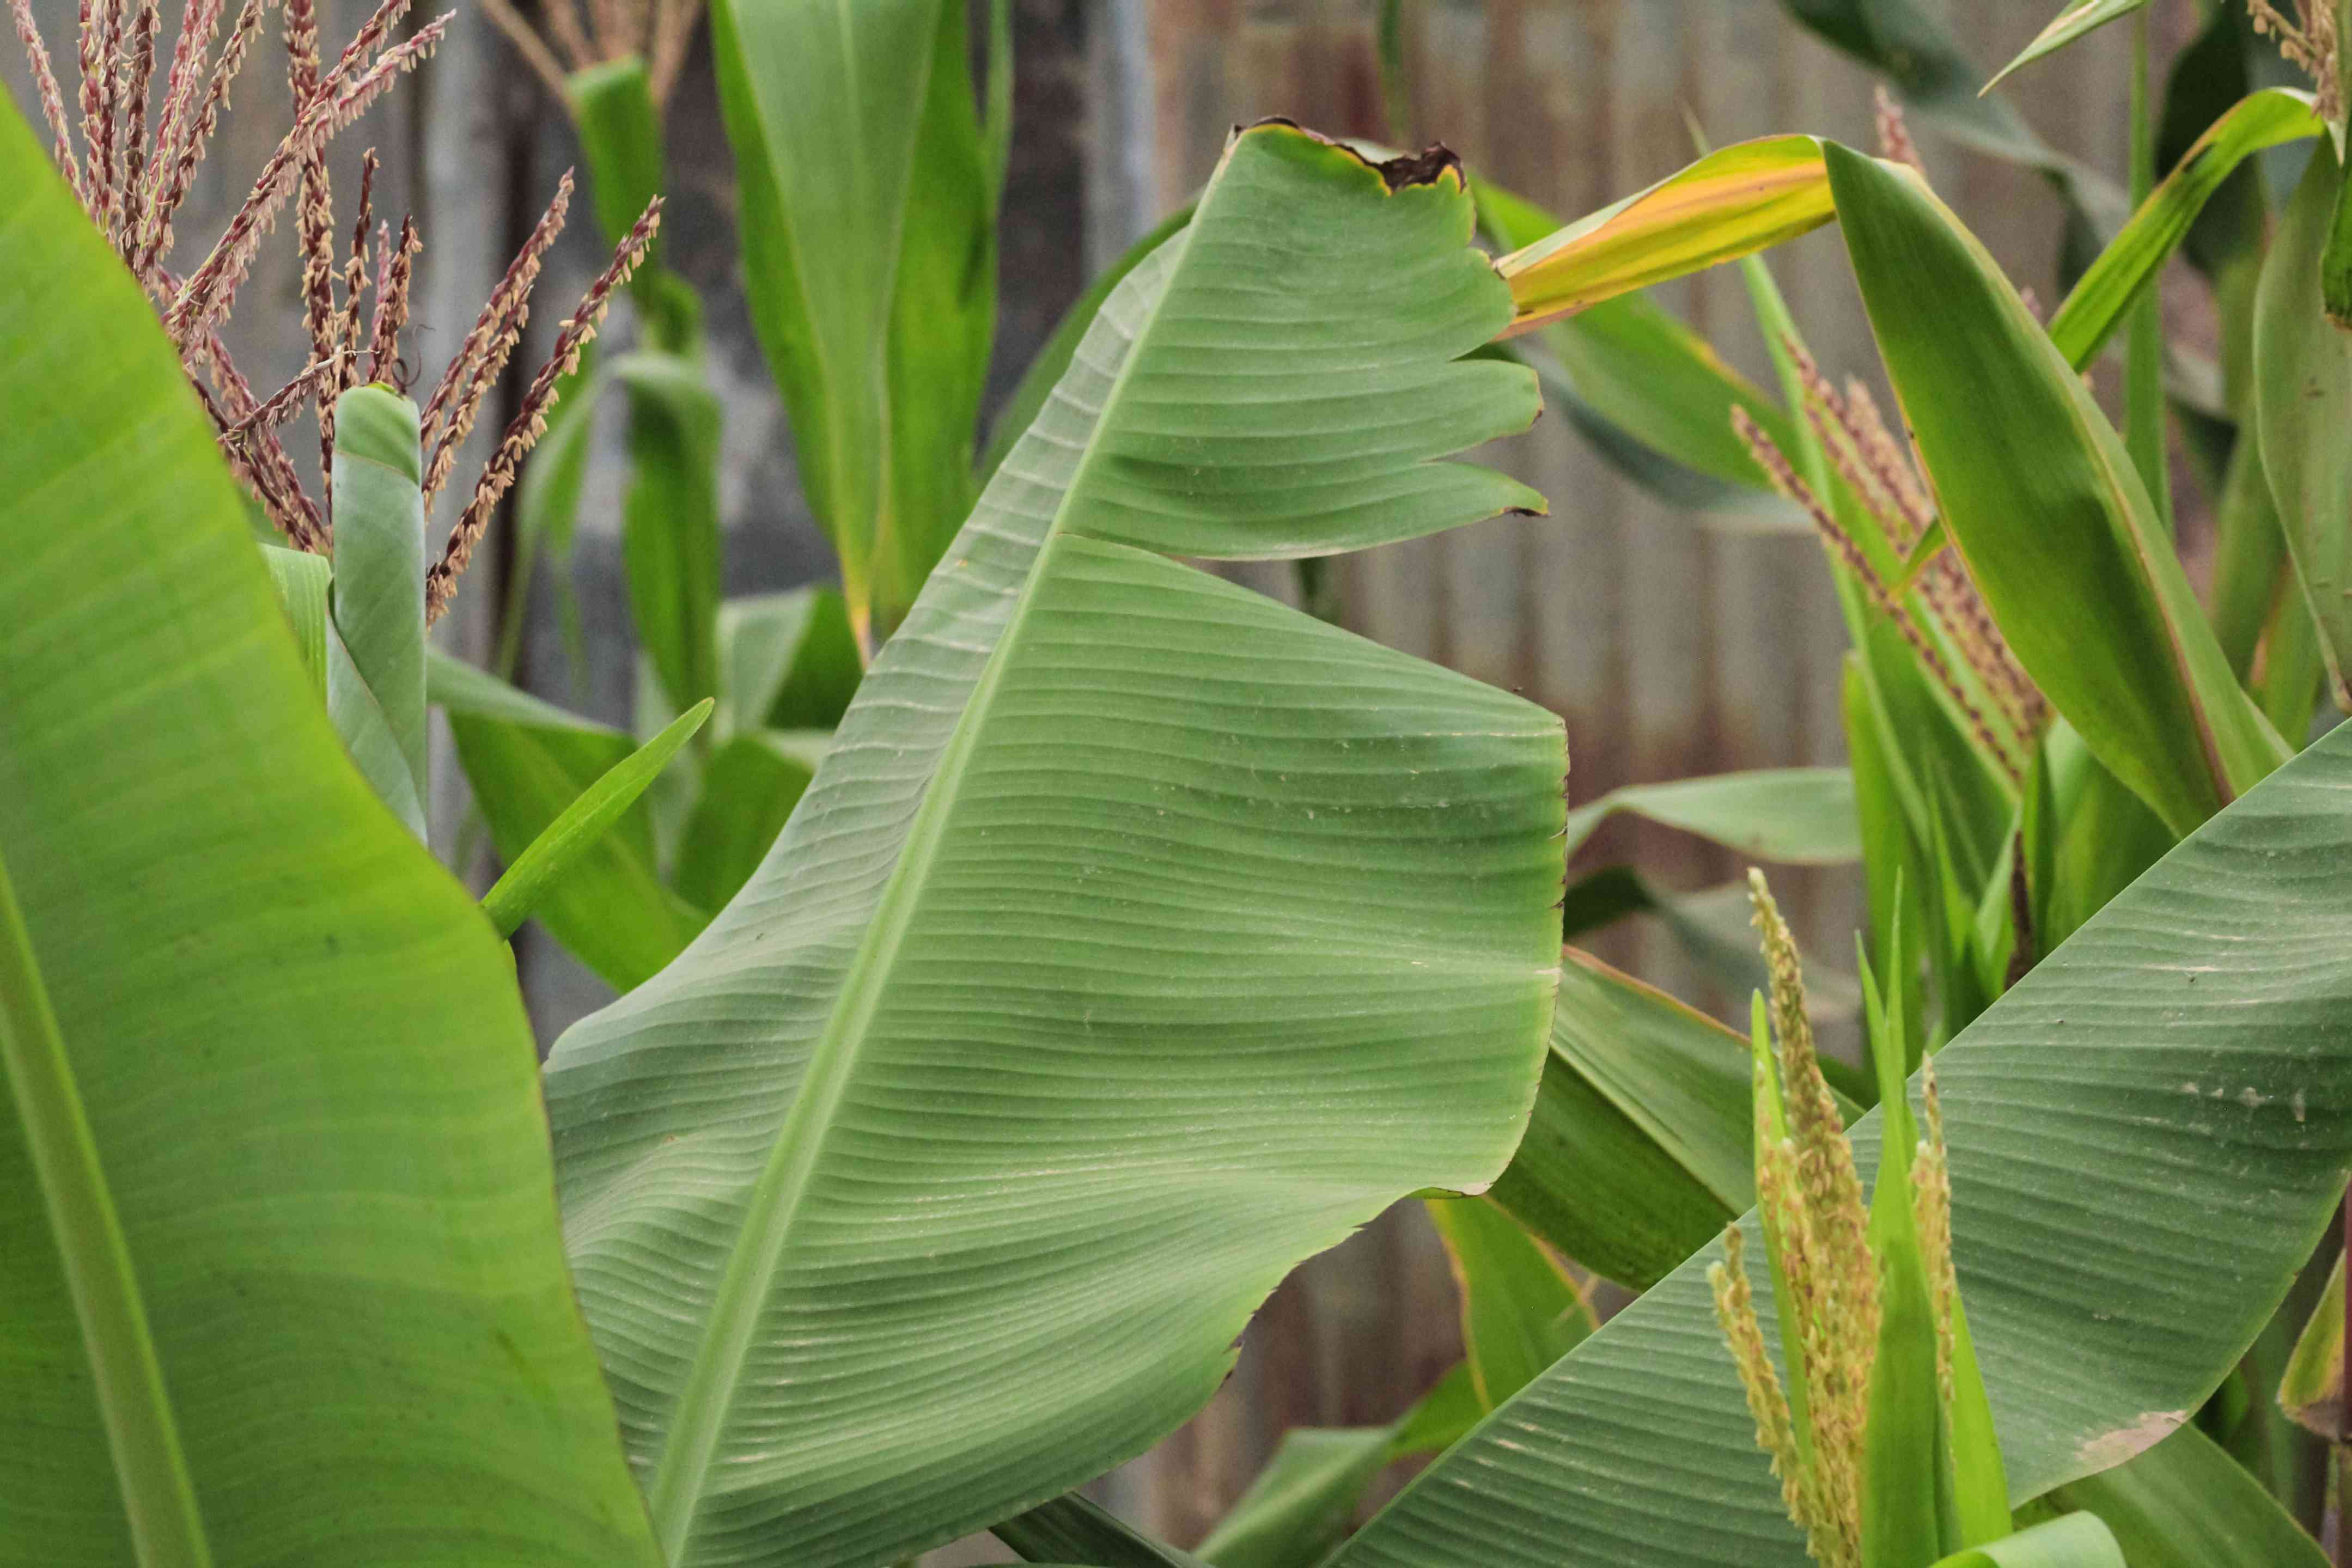 Snow banana tree with large thick leaves with cuts on sides closeup